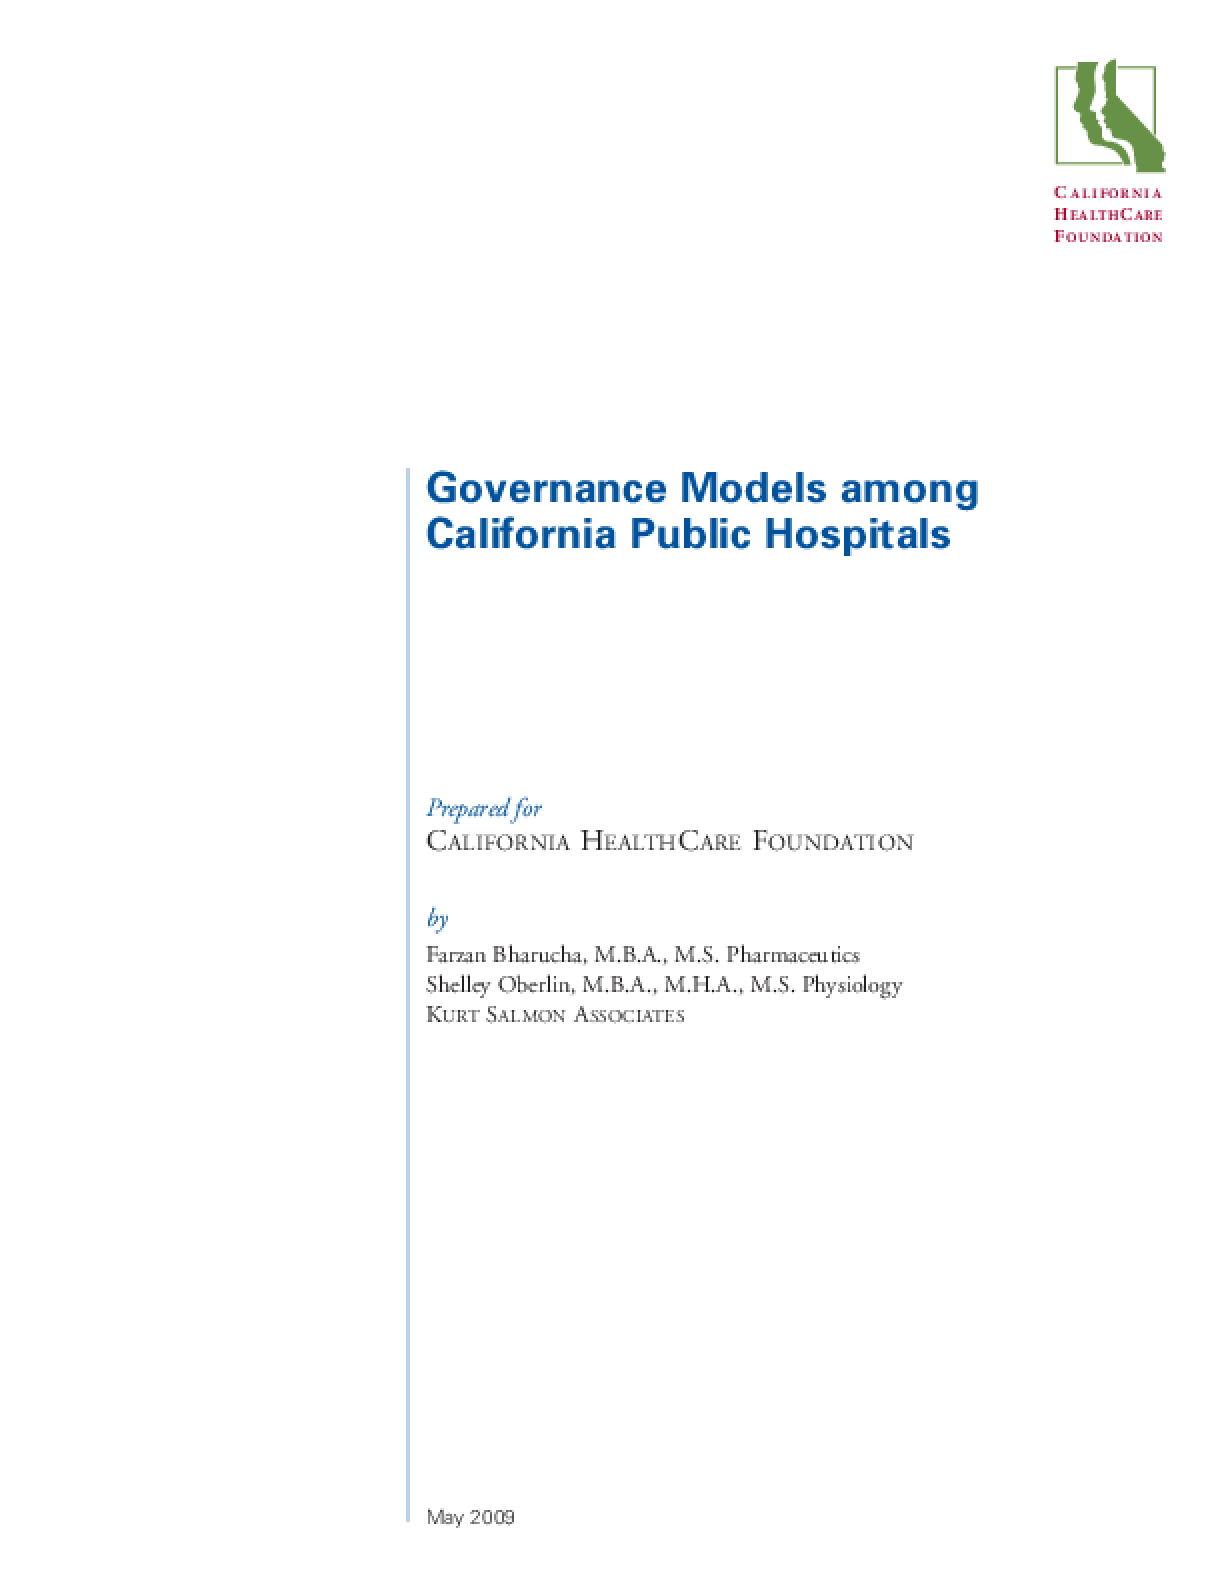 Governance Models Among California Public Hospitals